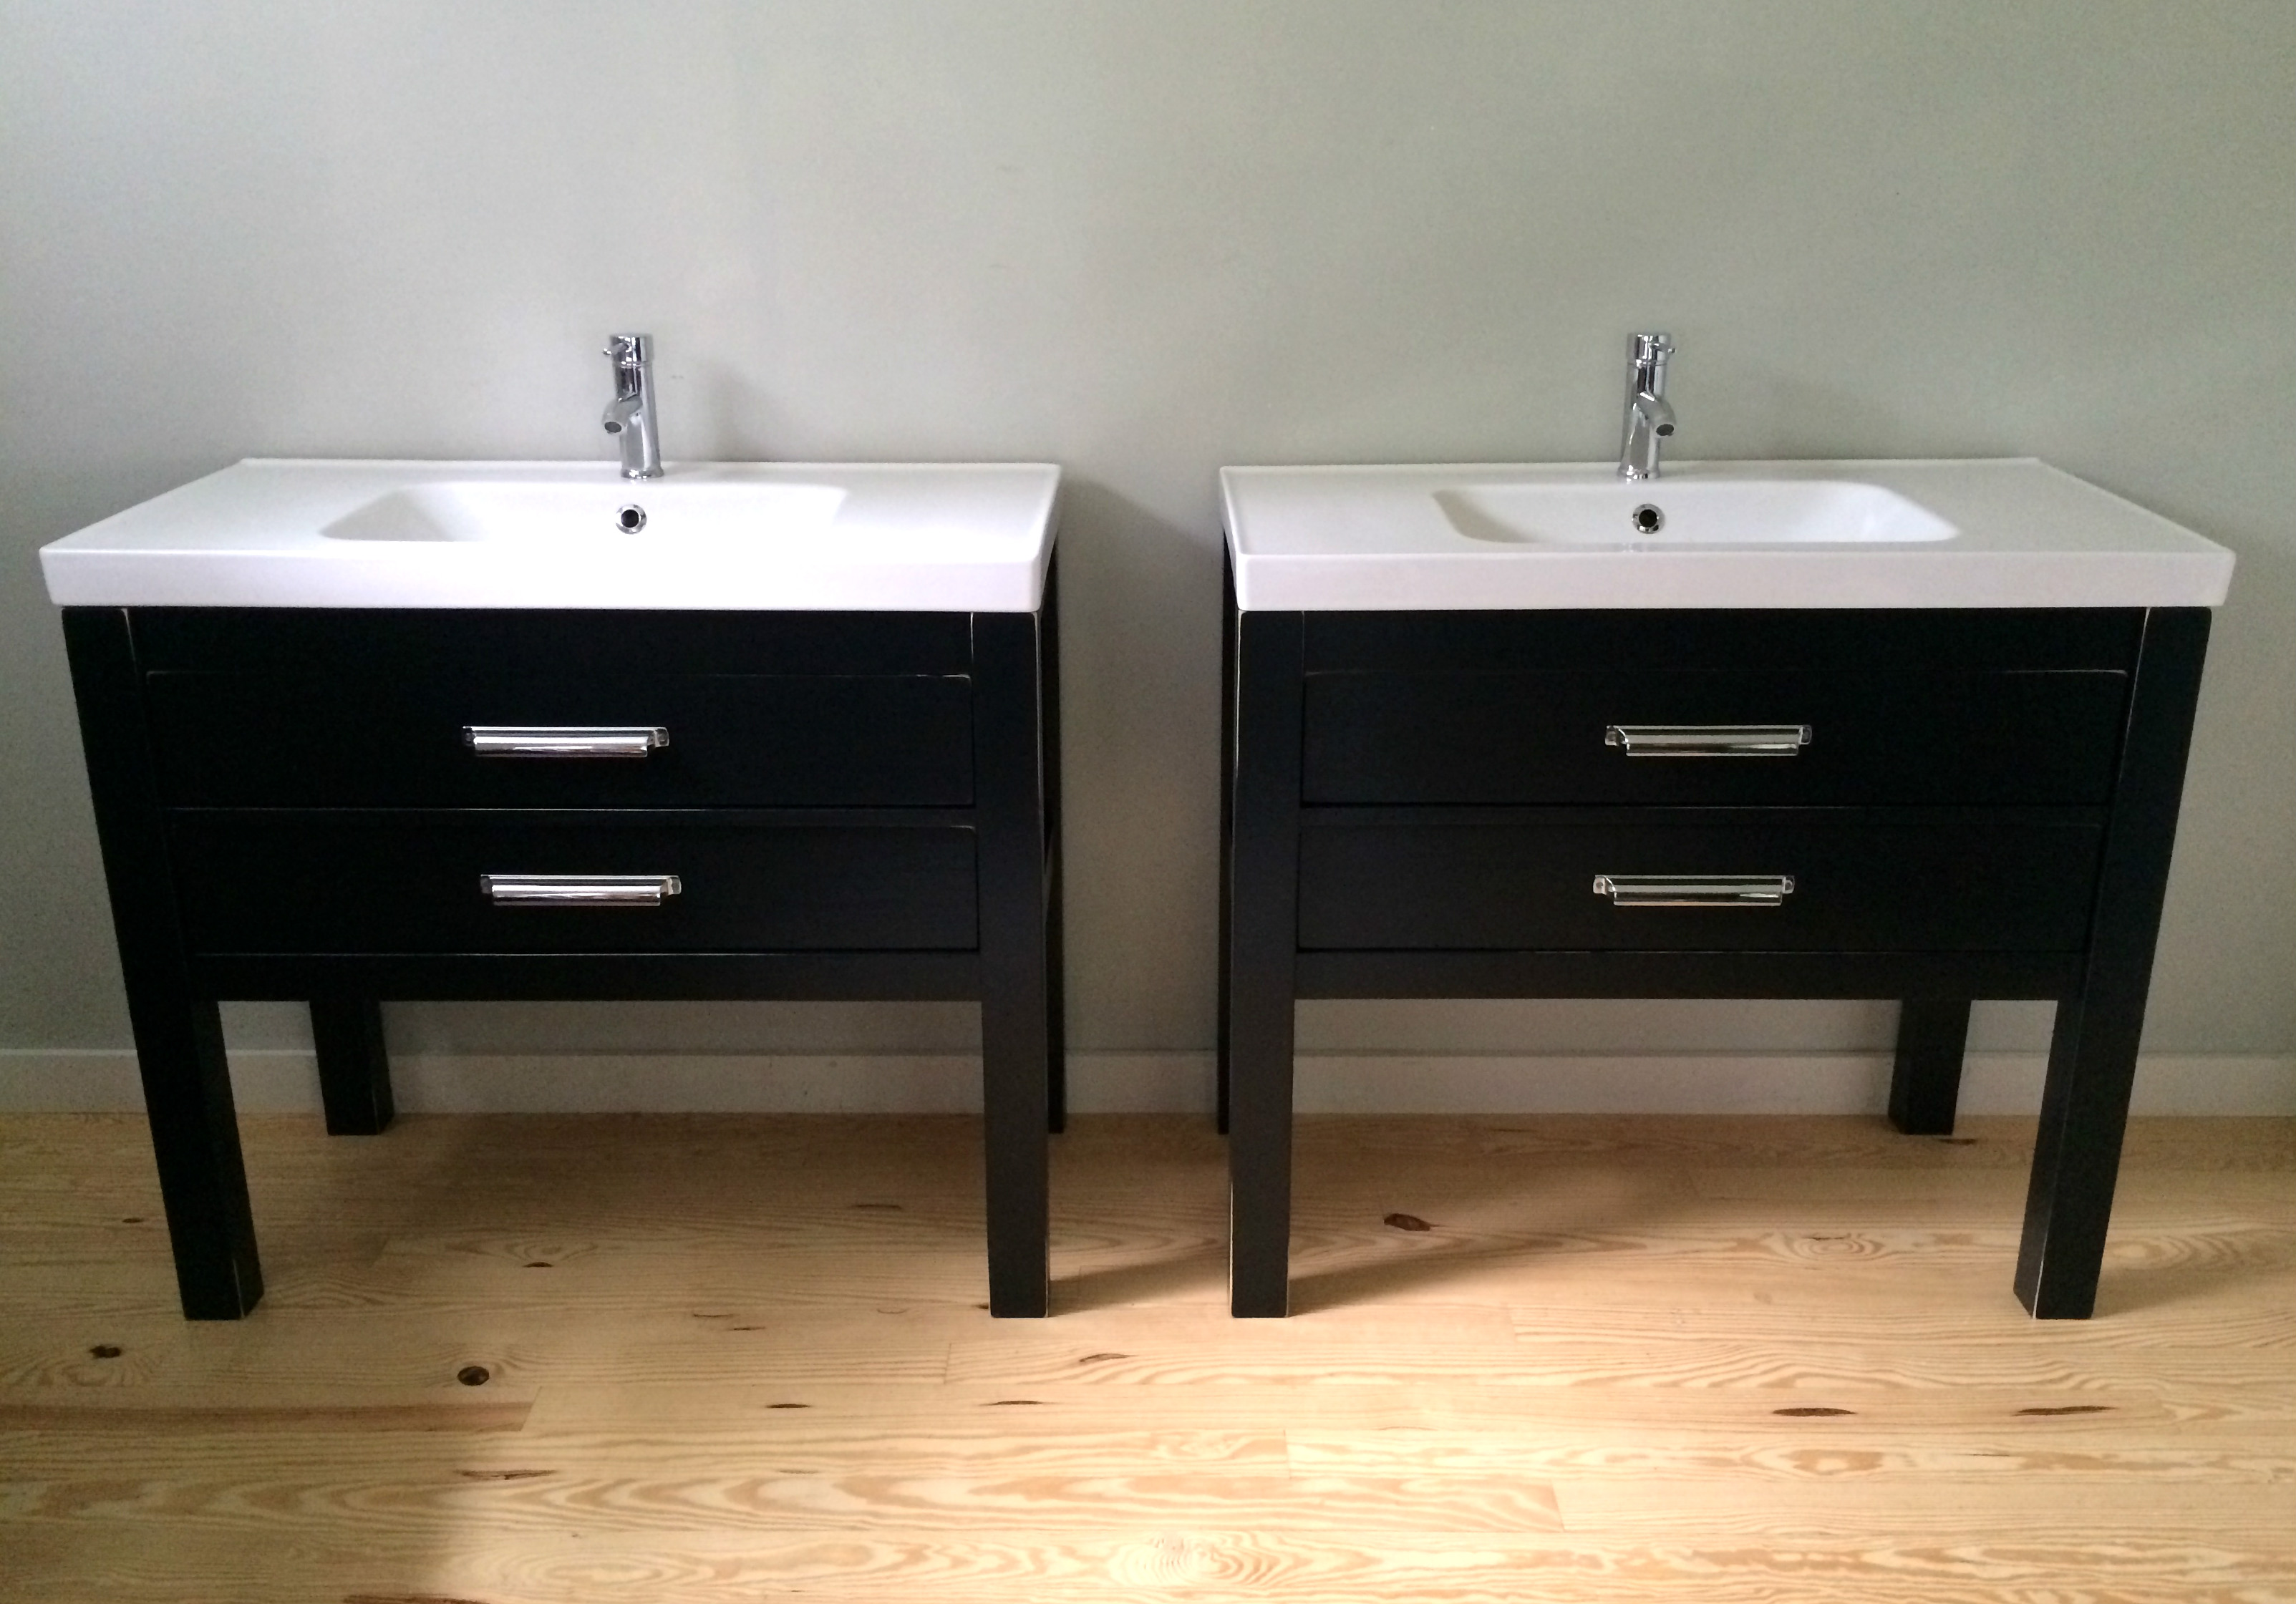 Matching black Bathroom Vanities